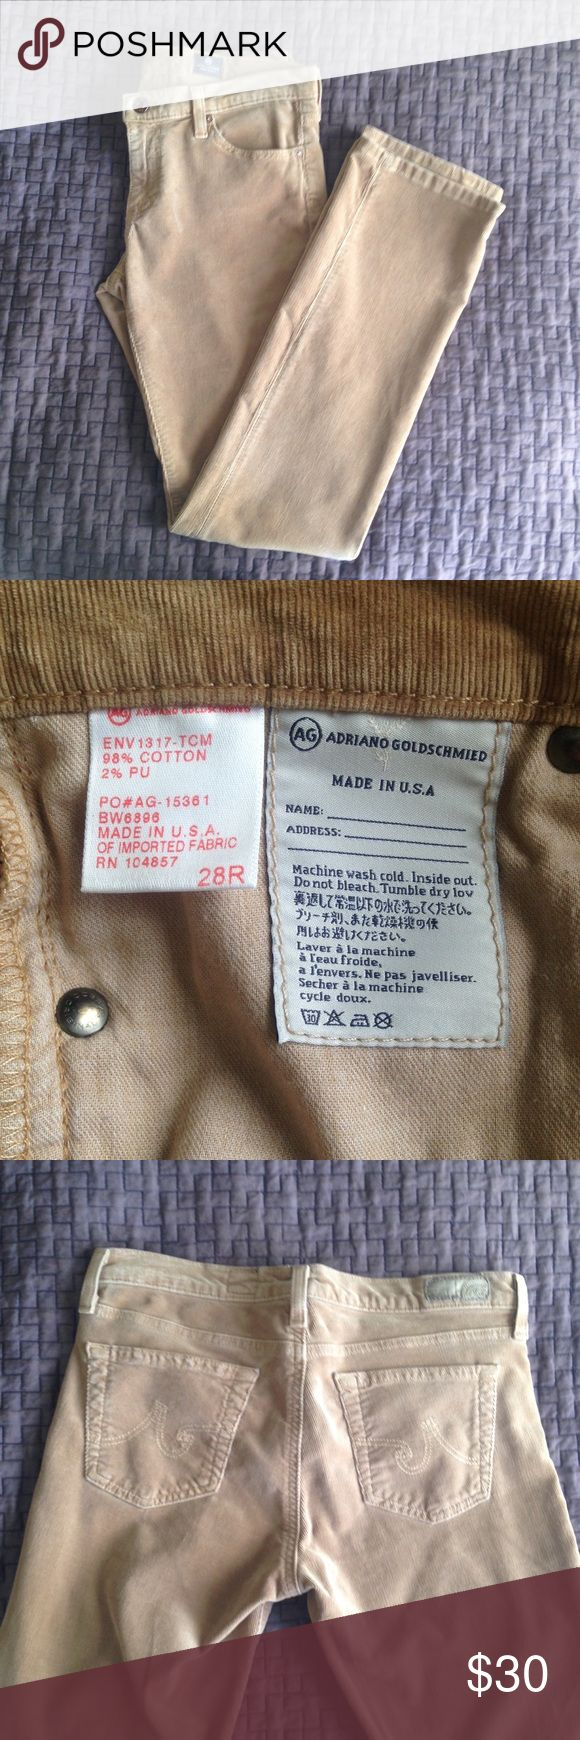 AG Adriano Goldschmied Slim Bootcut Corduroys AG Adriano Goldschmied Slim Bootcut Ballad Corduroy pants in Khaki. Made in the USA. Women's size 28, regular. Super soft corduroys great for the transition to Fall. Barely worn and in great condition. AG Adriano Goldschmied Pants